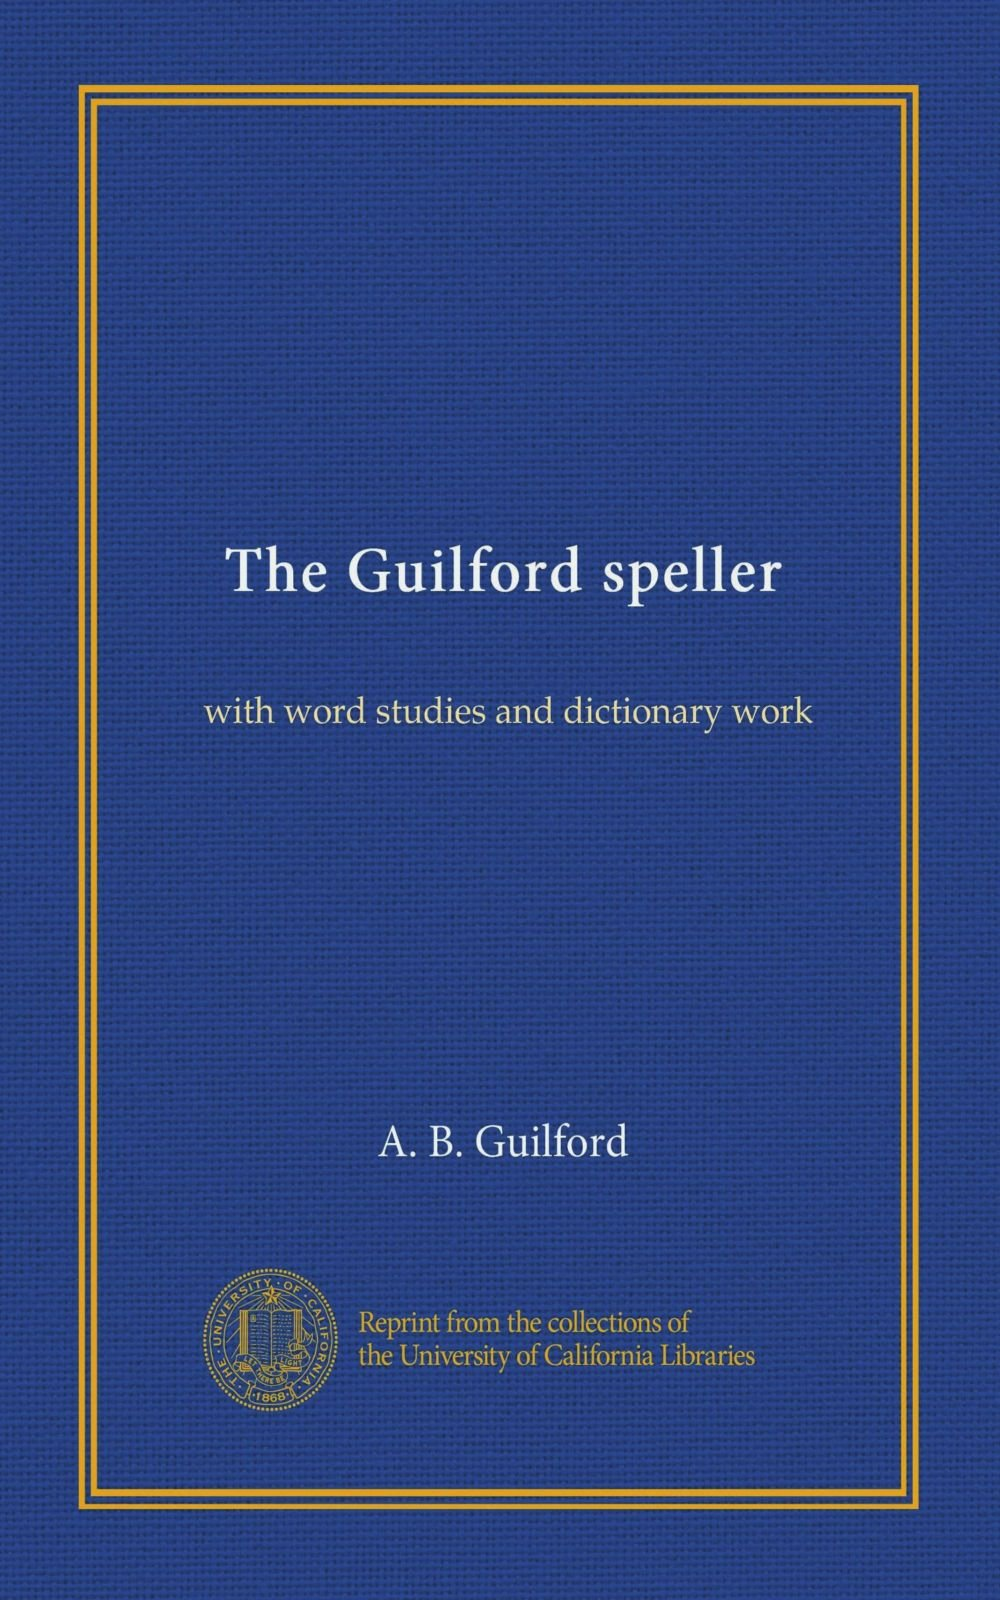 The Guilford speller: with word studies and dictionary work PDF